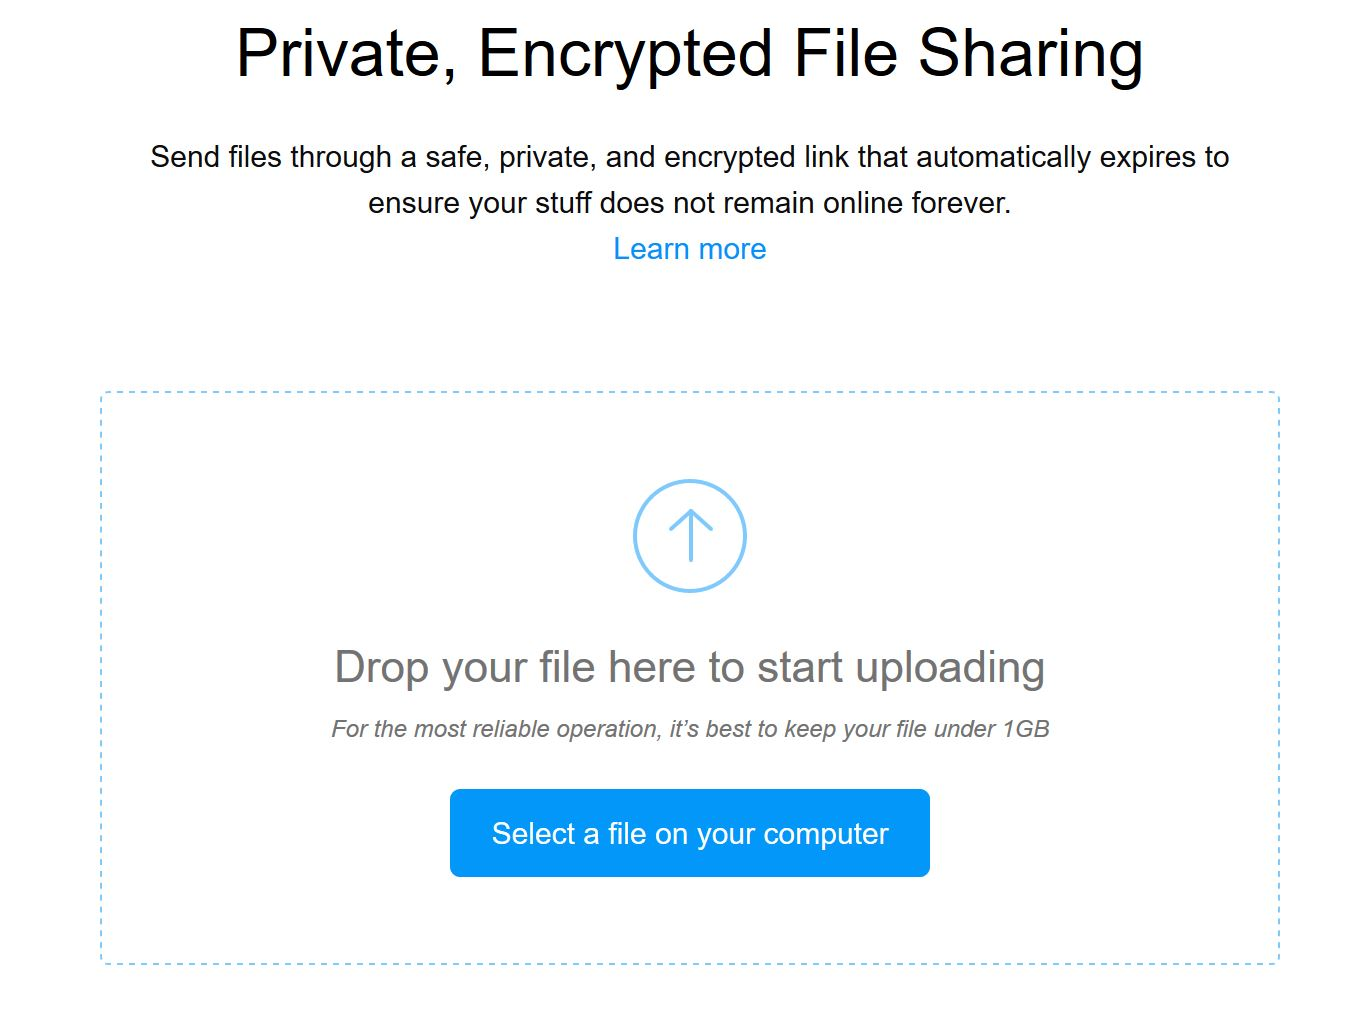 Mozilla tests file sharing service that deletes files after one